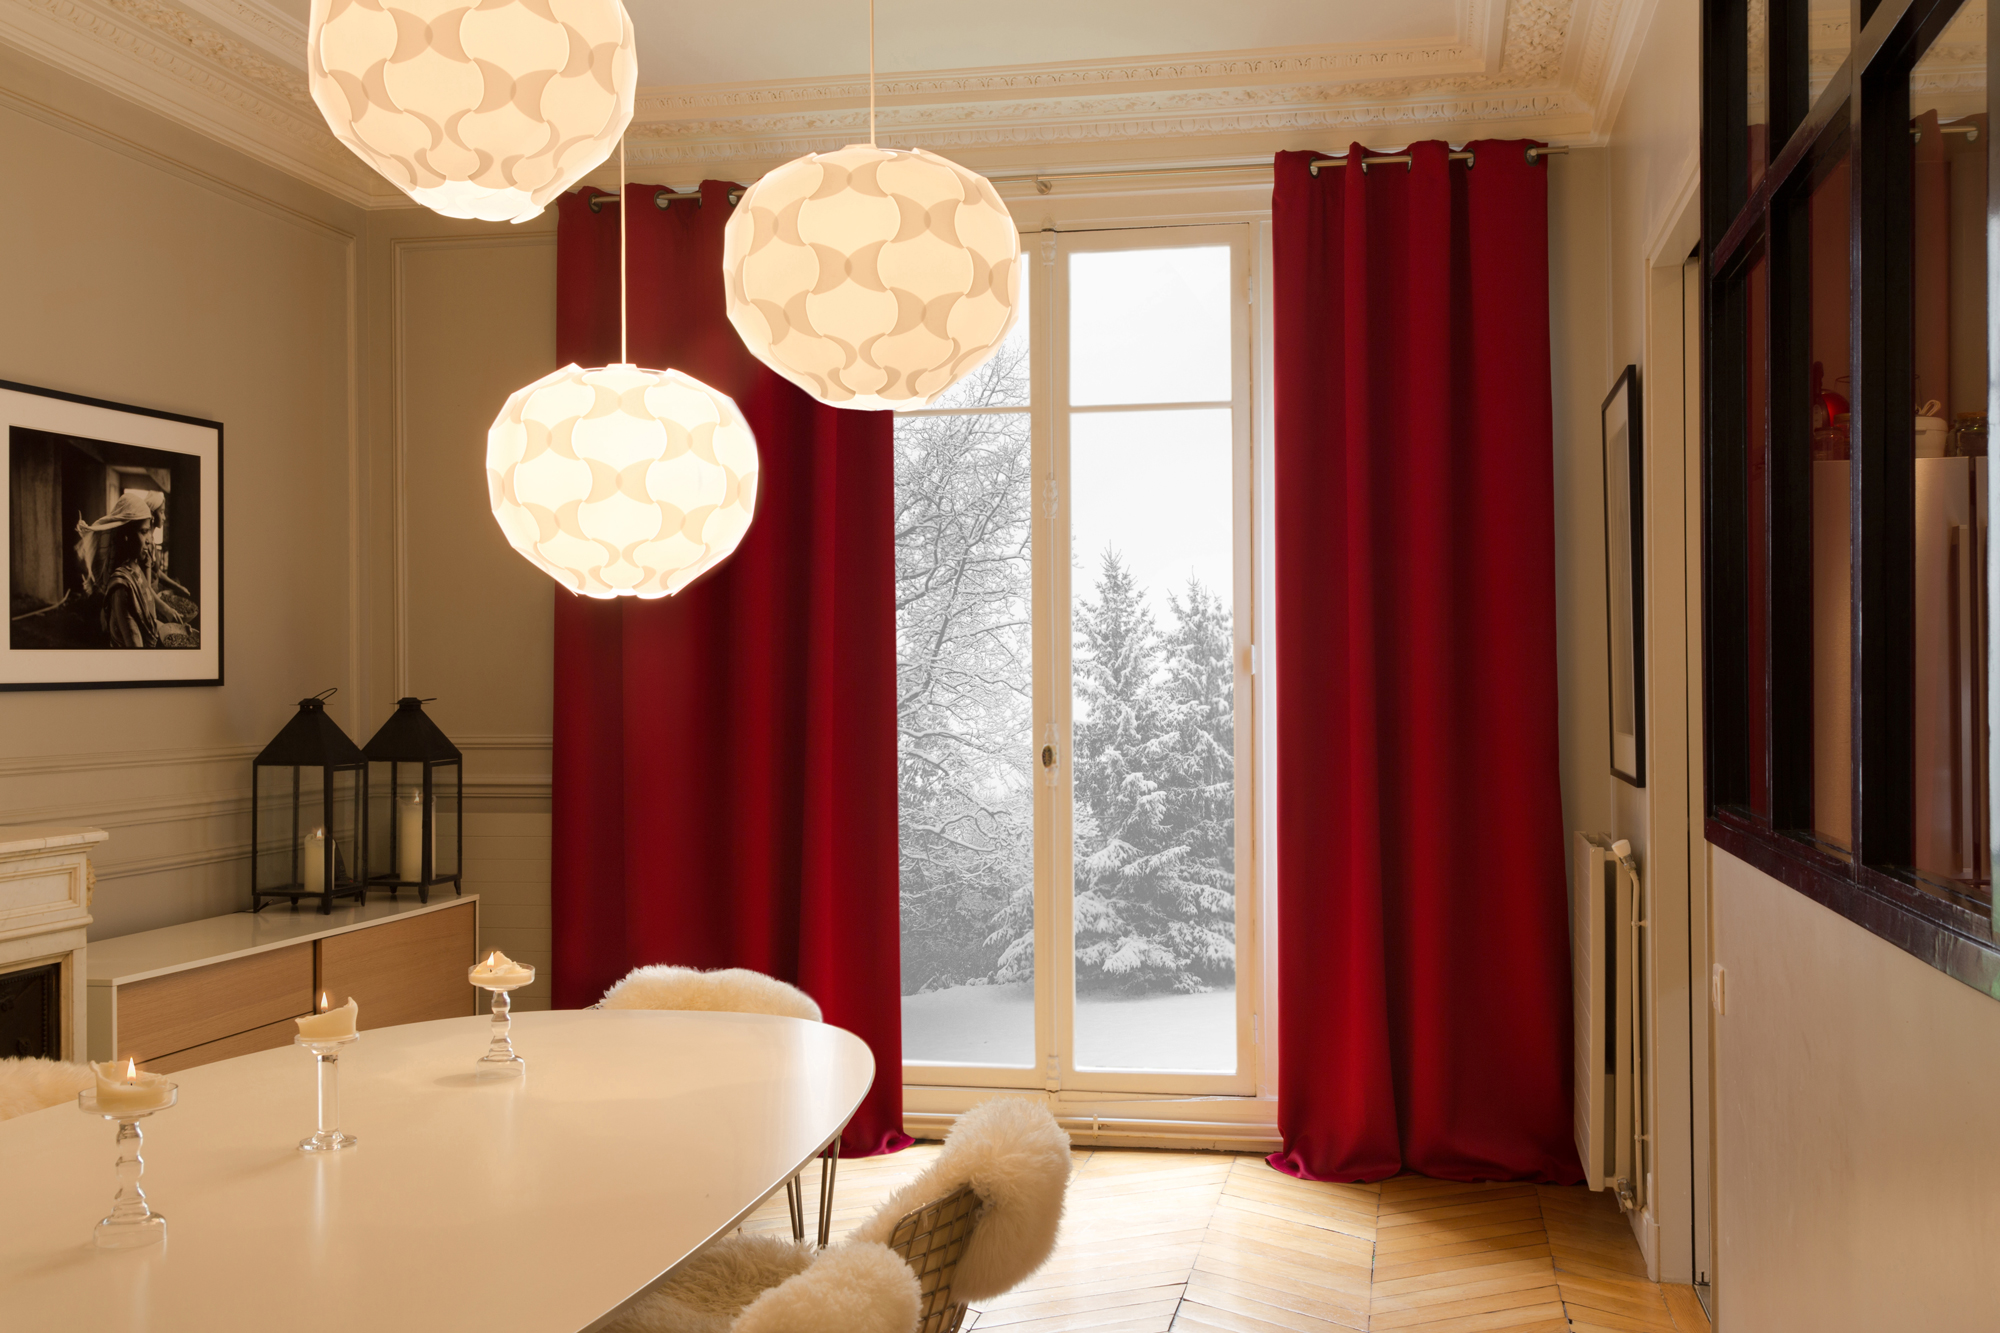 Thermal insulated curtain: red thermal curtains